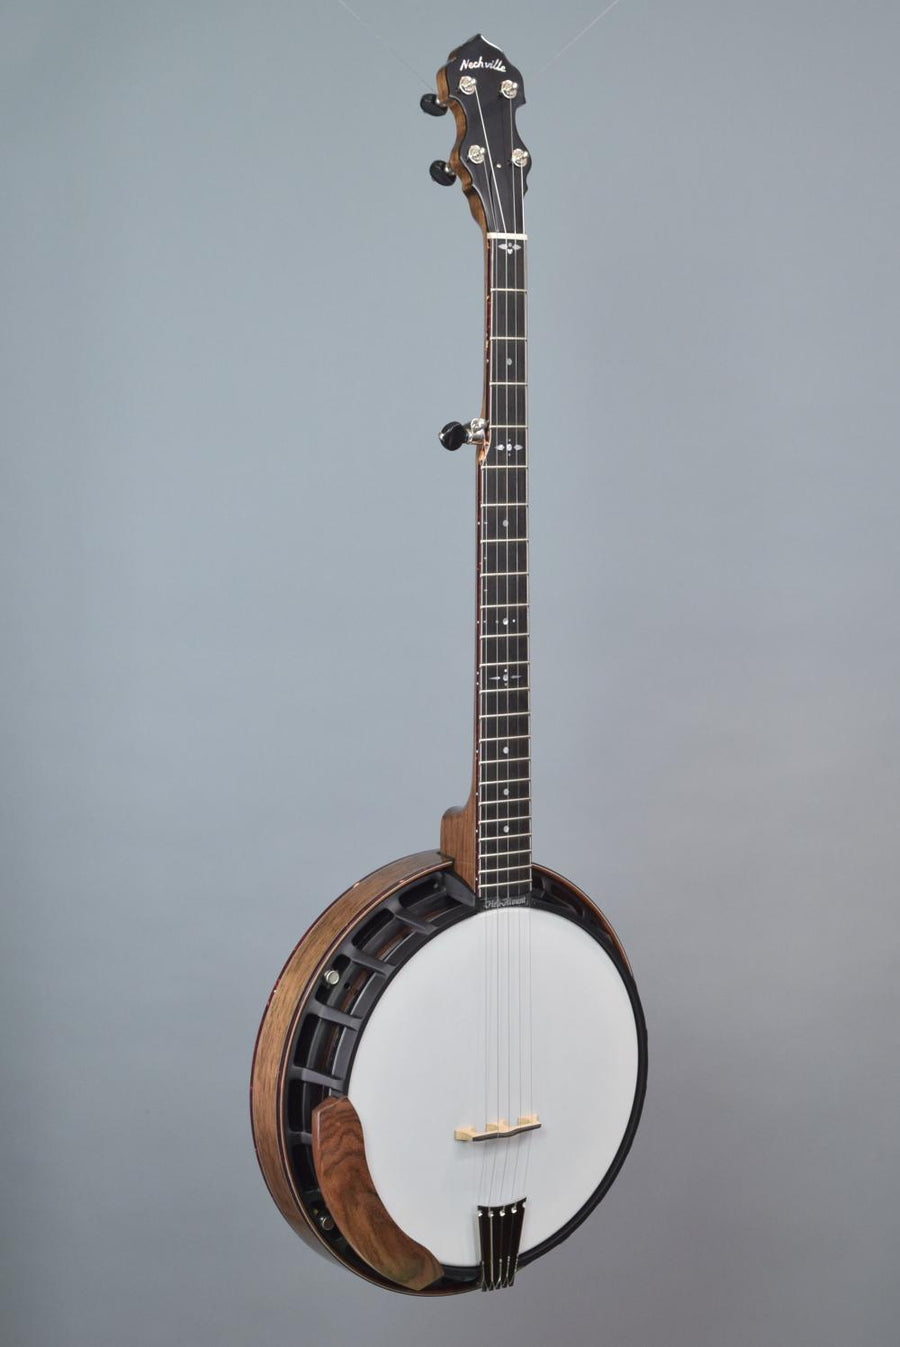 Nechville Aries Resonator Banjo